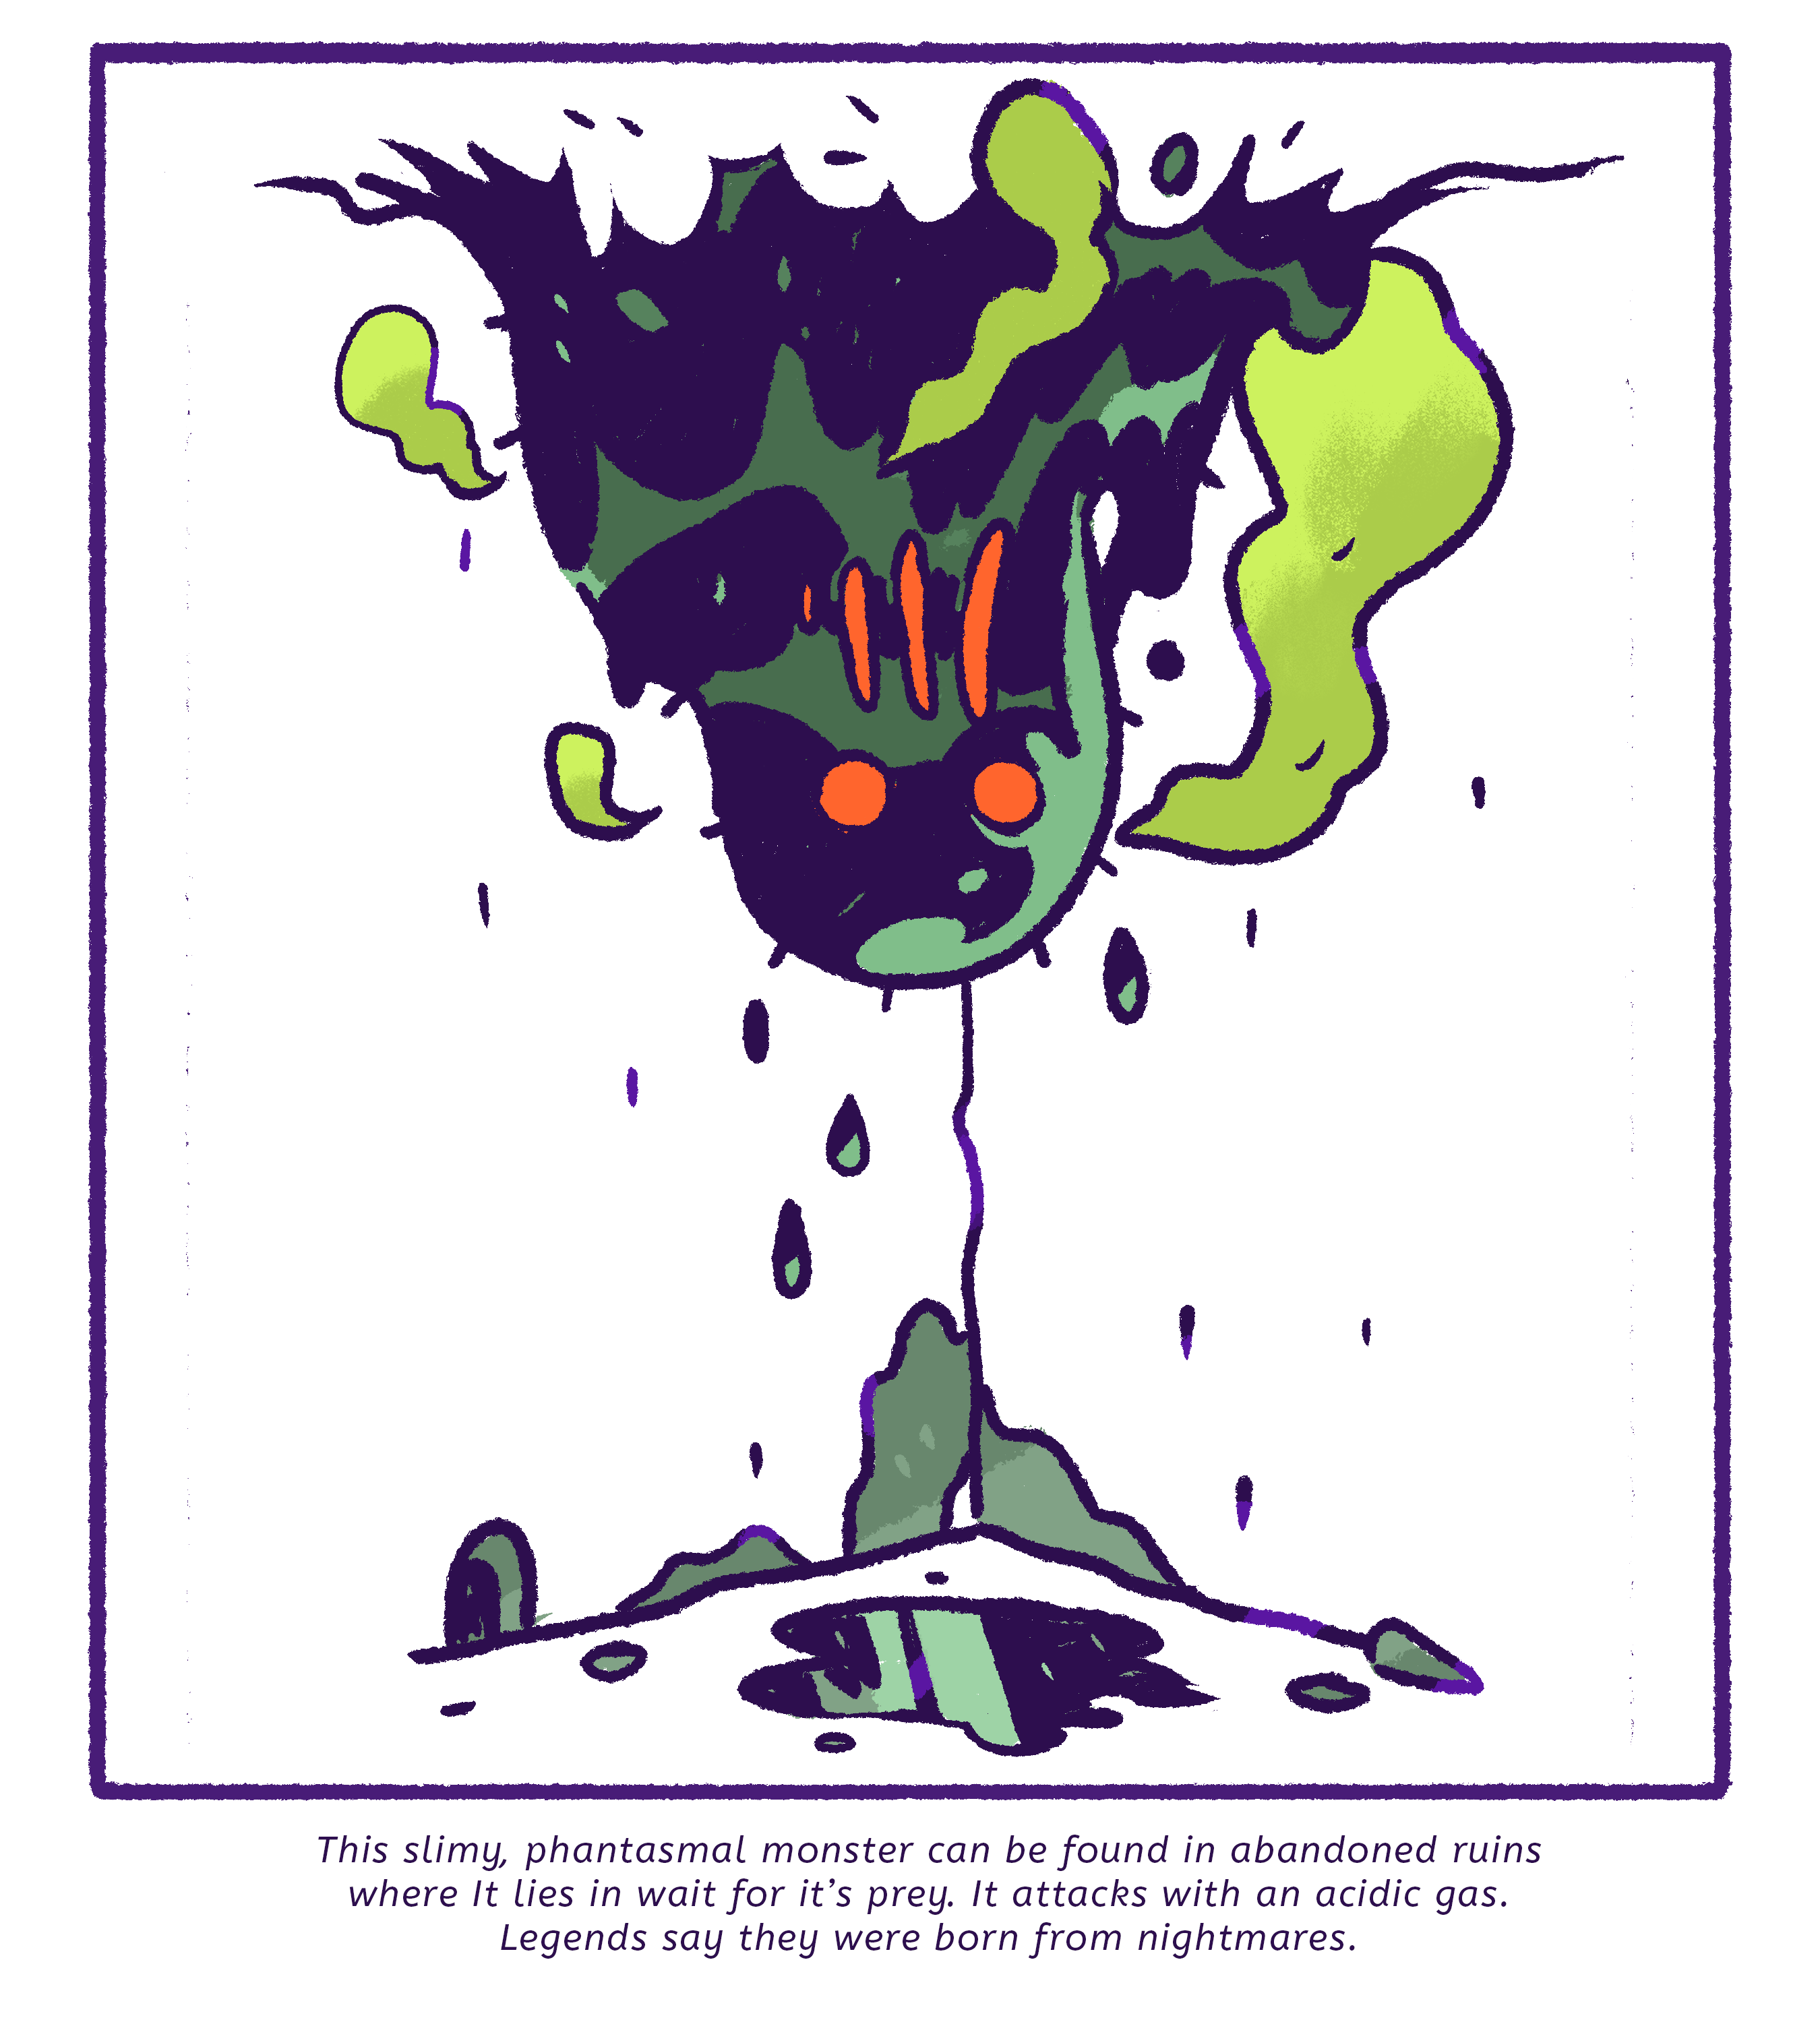 Ooze by Flancortes on Newgrounds